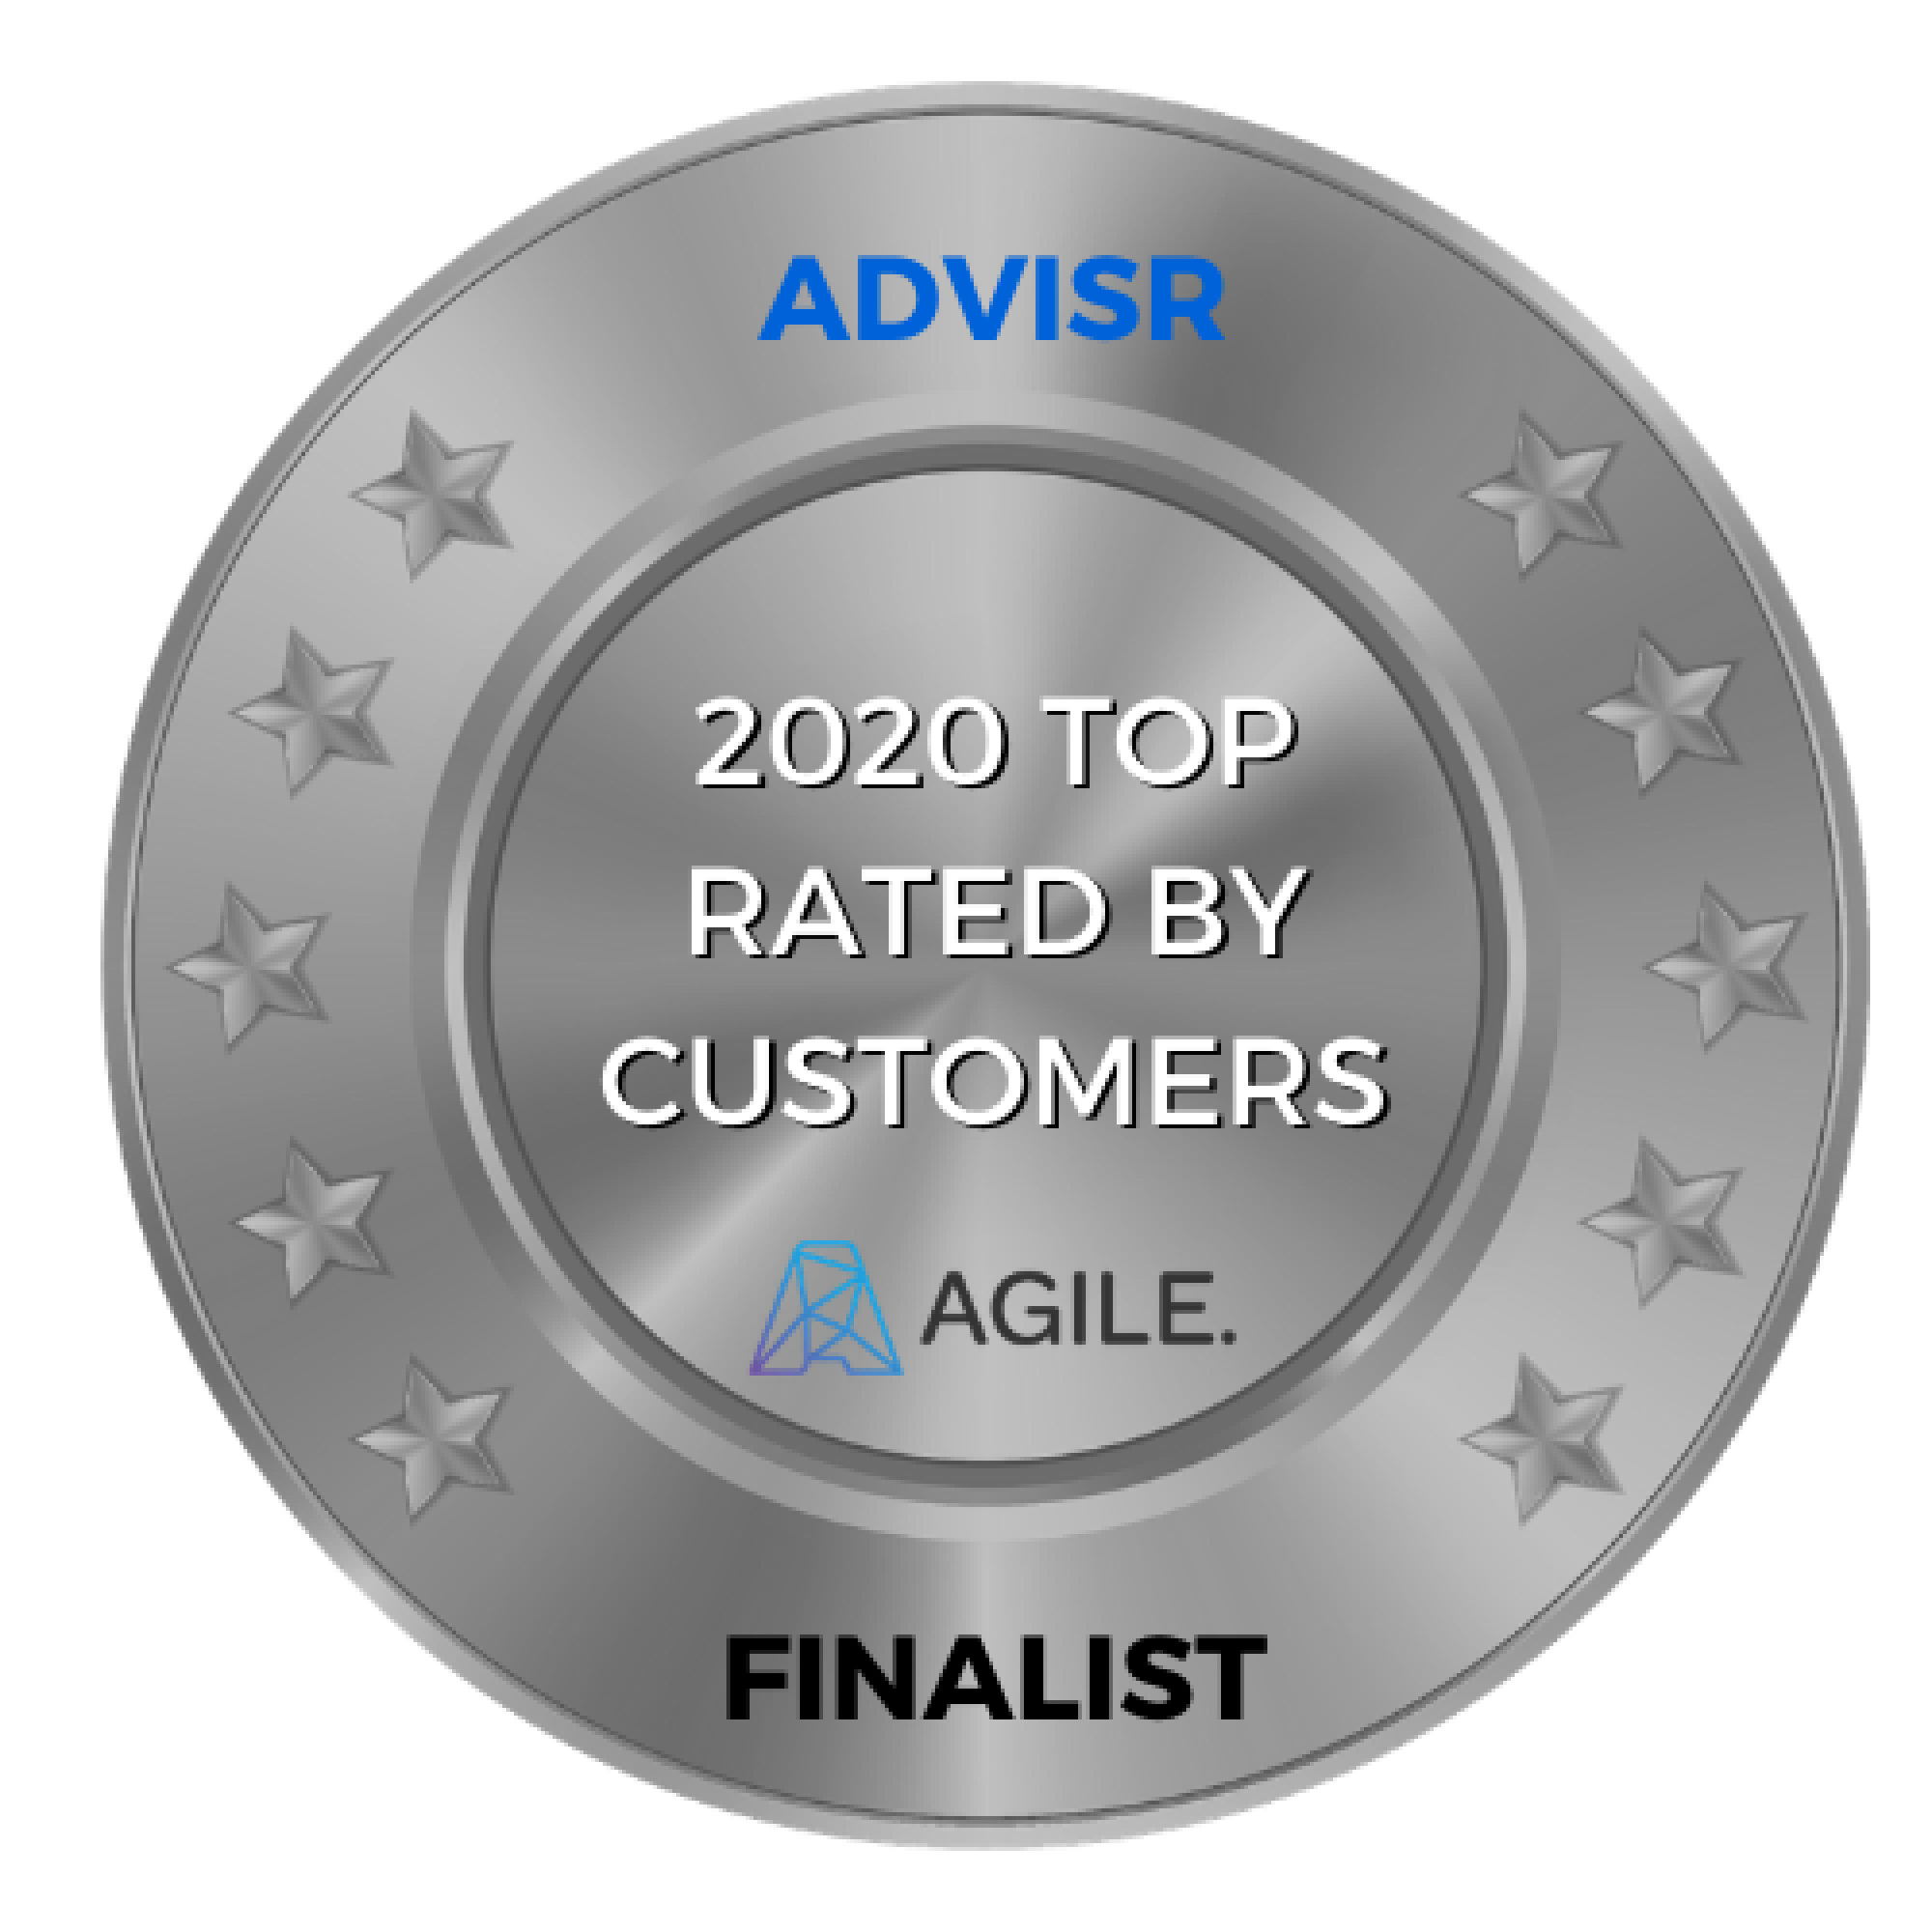 Advisr Insurance Broker Awards 2020 Finalist | Top Rated by Customers